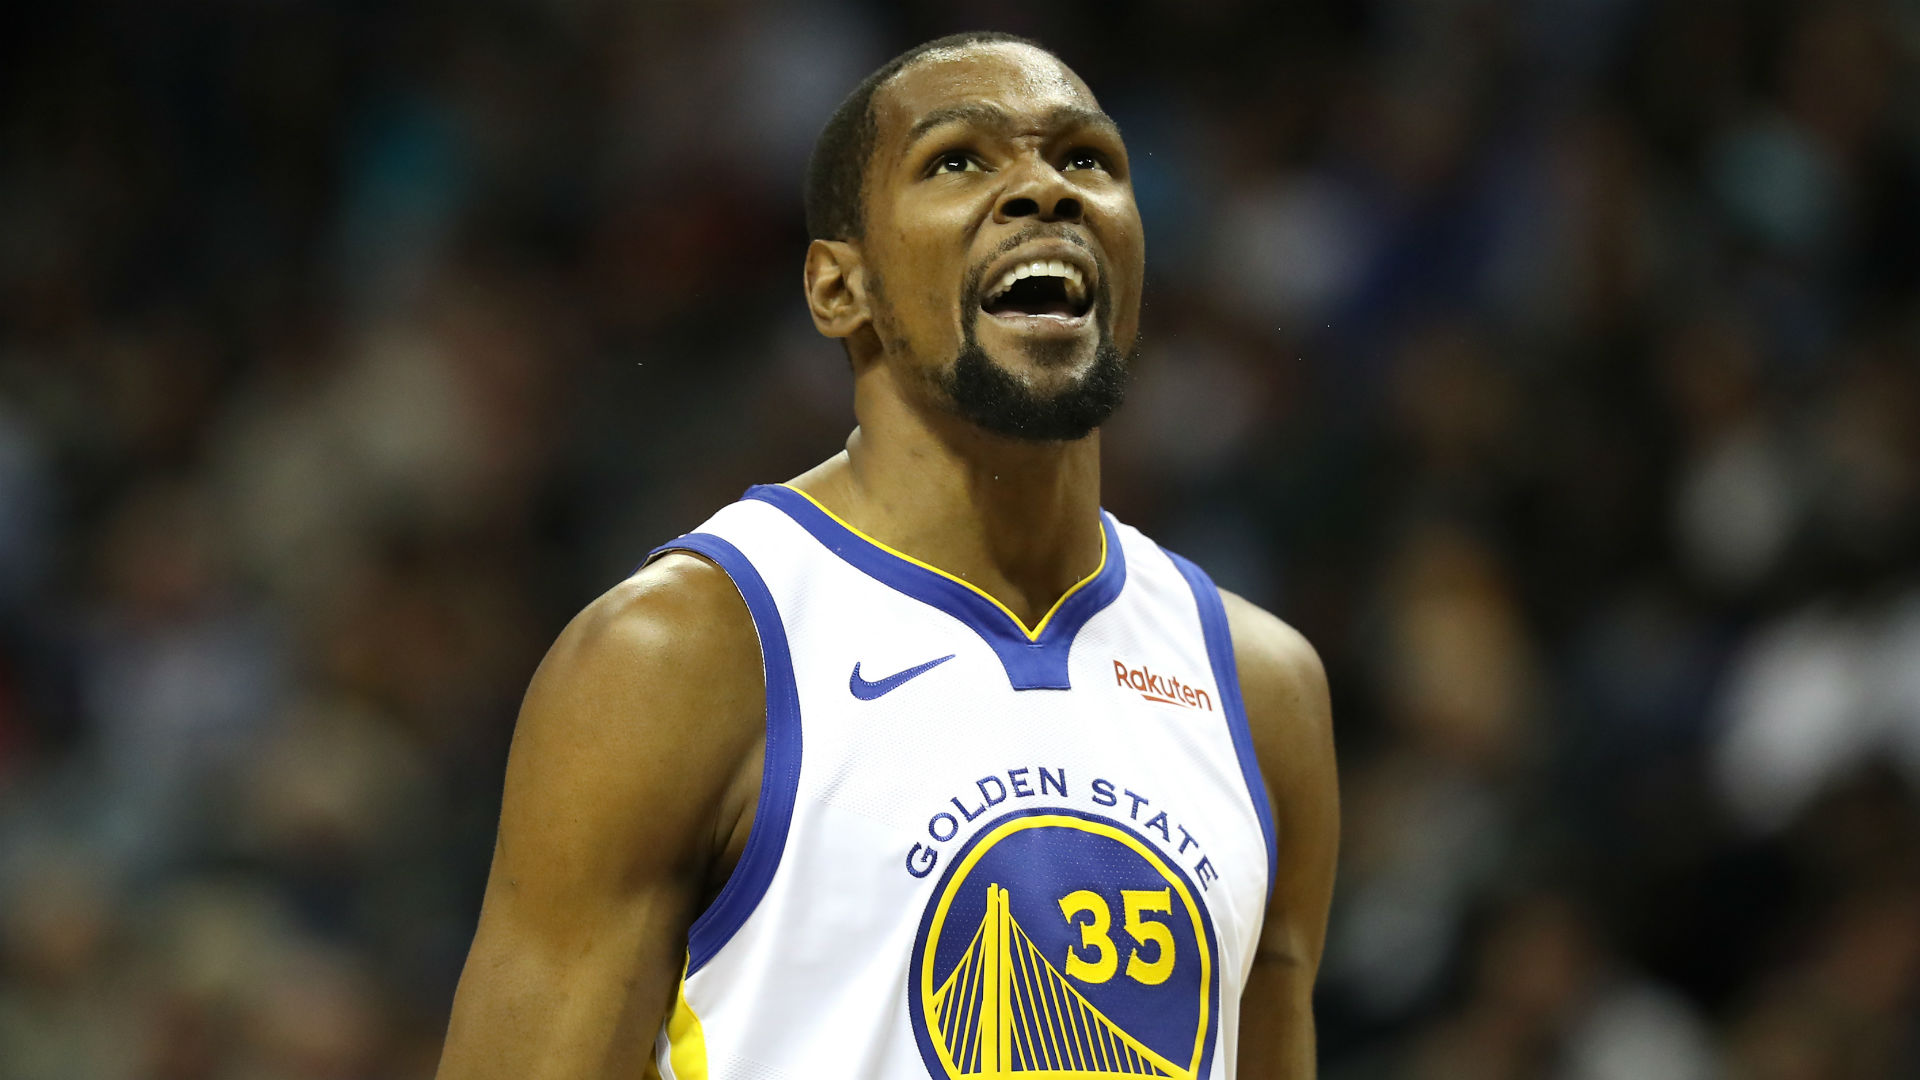 Warriors' Kevin Durant defends social media use after latest spat